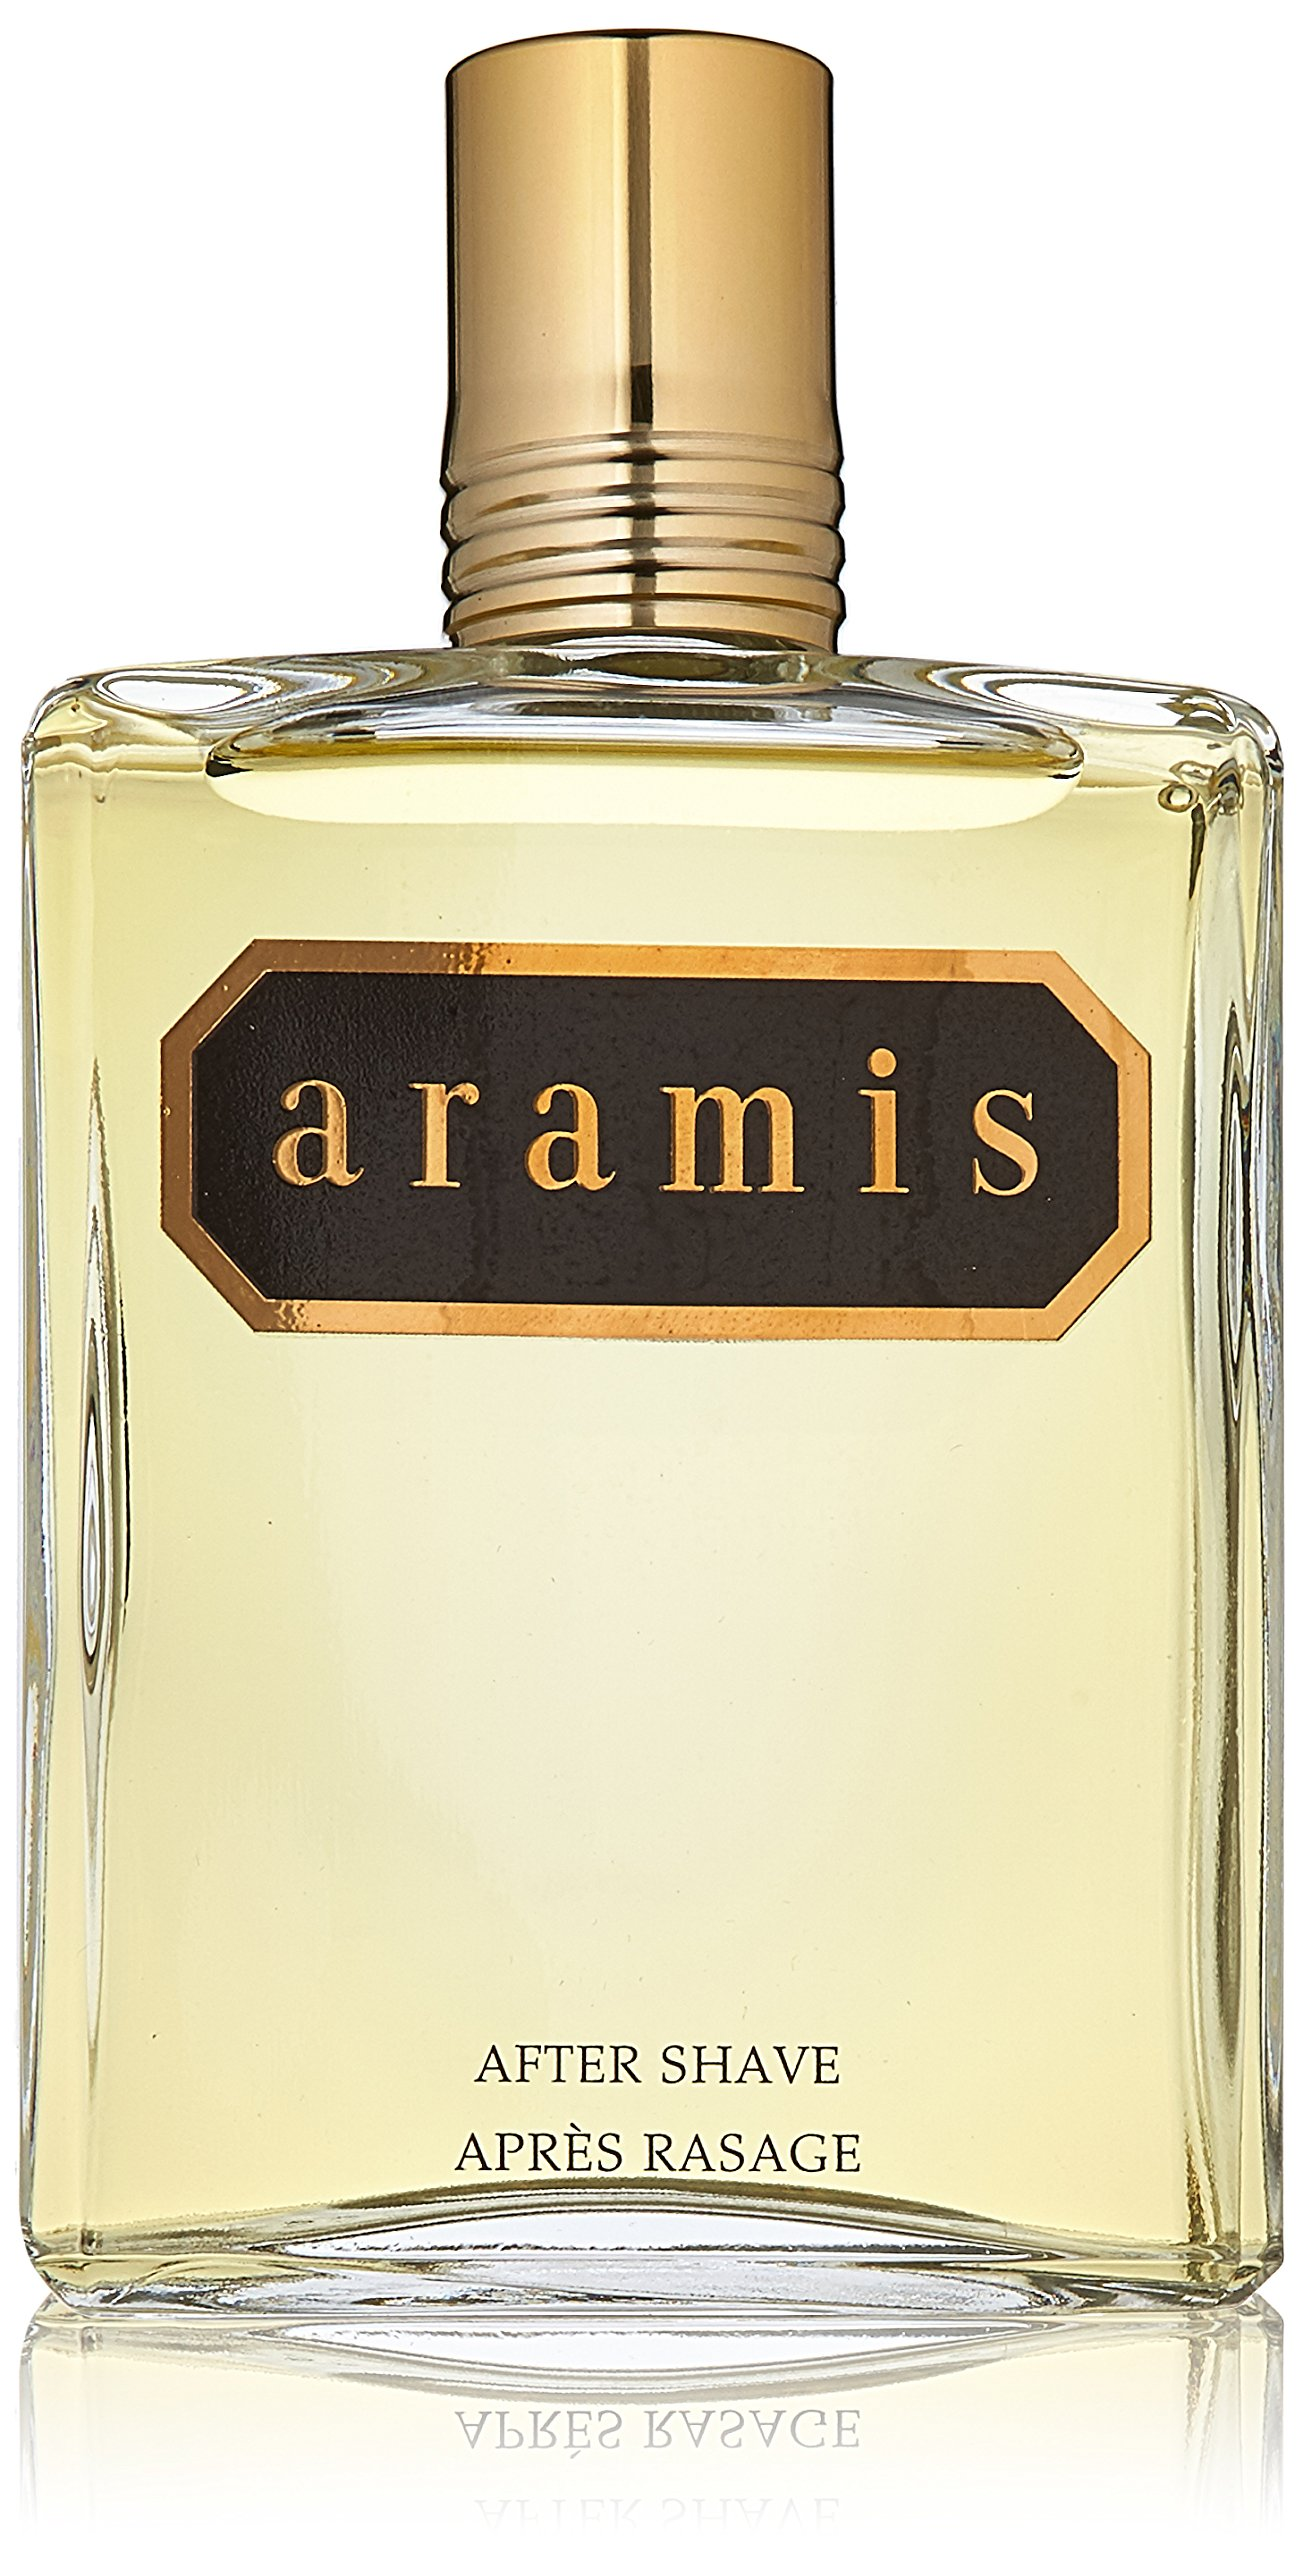 Aramis After Shave for Men, 8.1 Ounce by Aramis (Image #1)